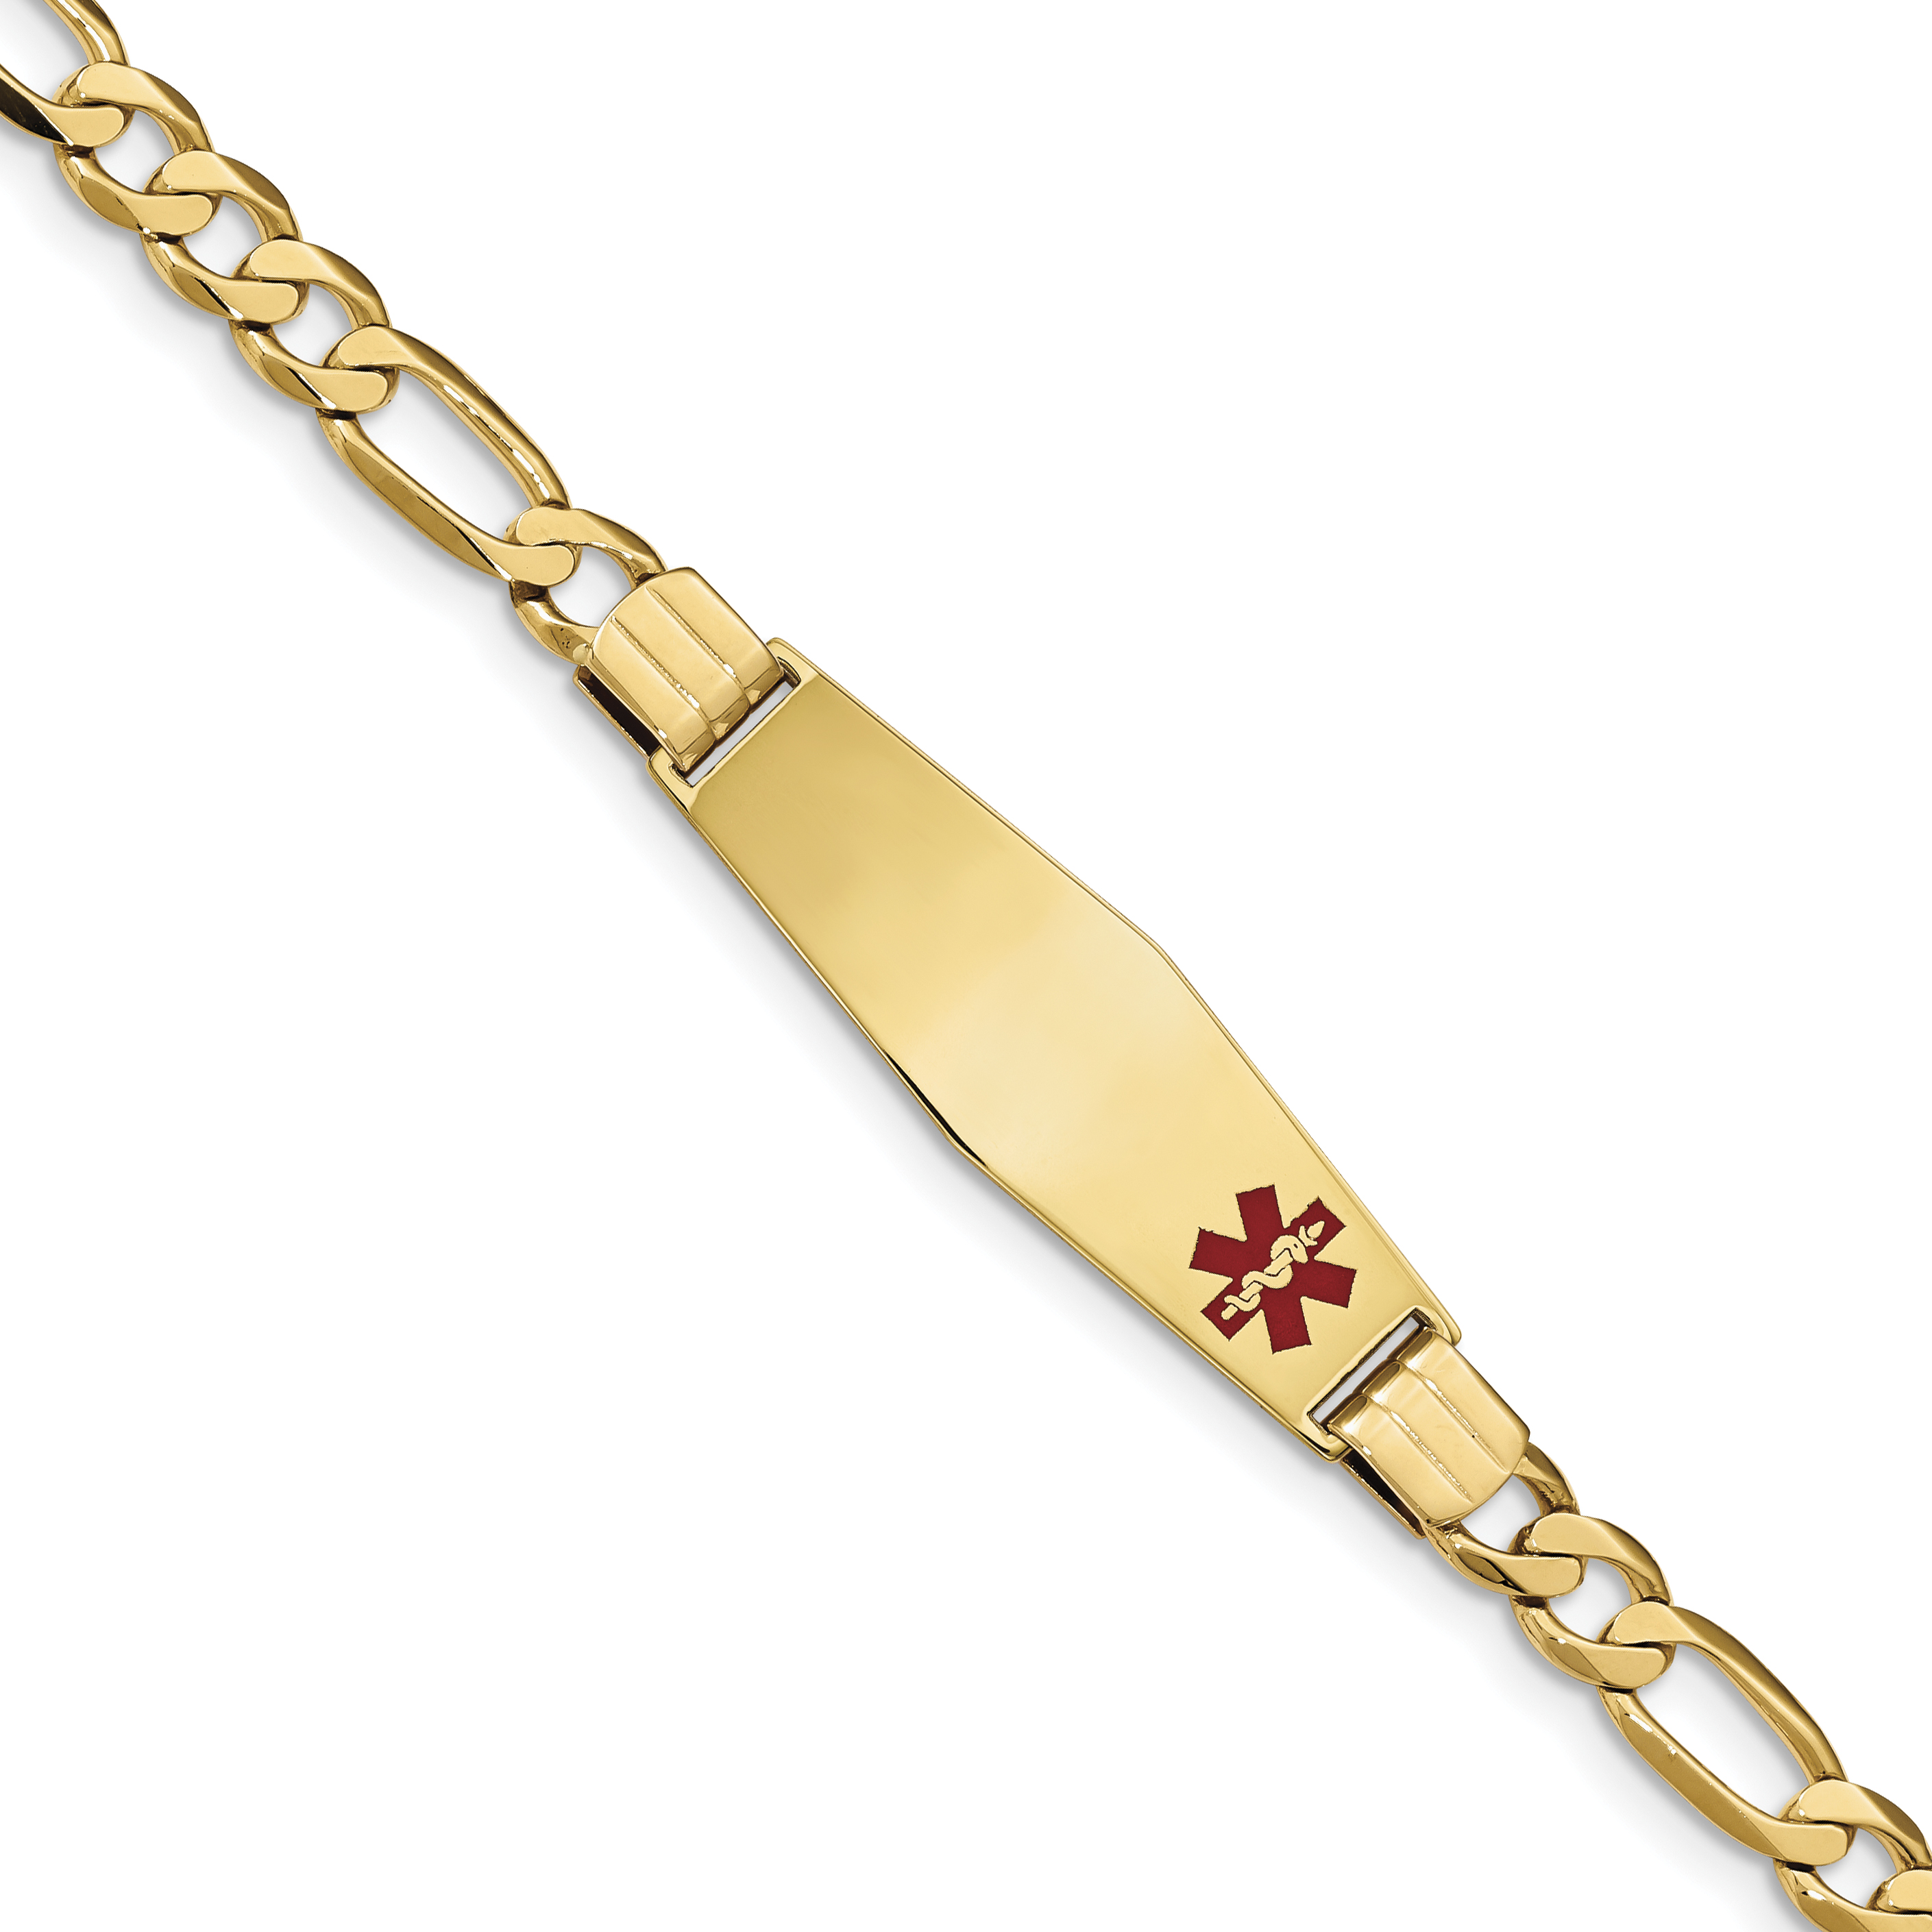 14K Medical Soft Diamond Shape Red Enamel Flat Figaro Link ID Bracelet by Core Gold